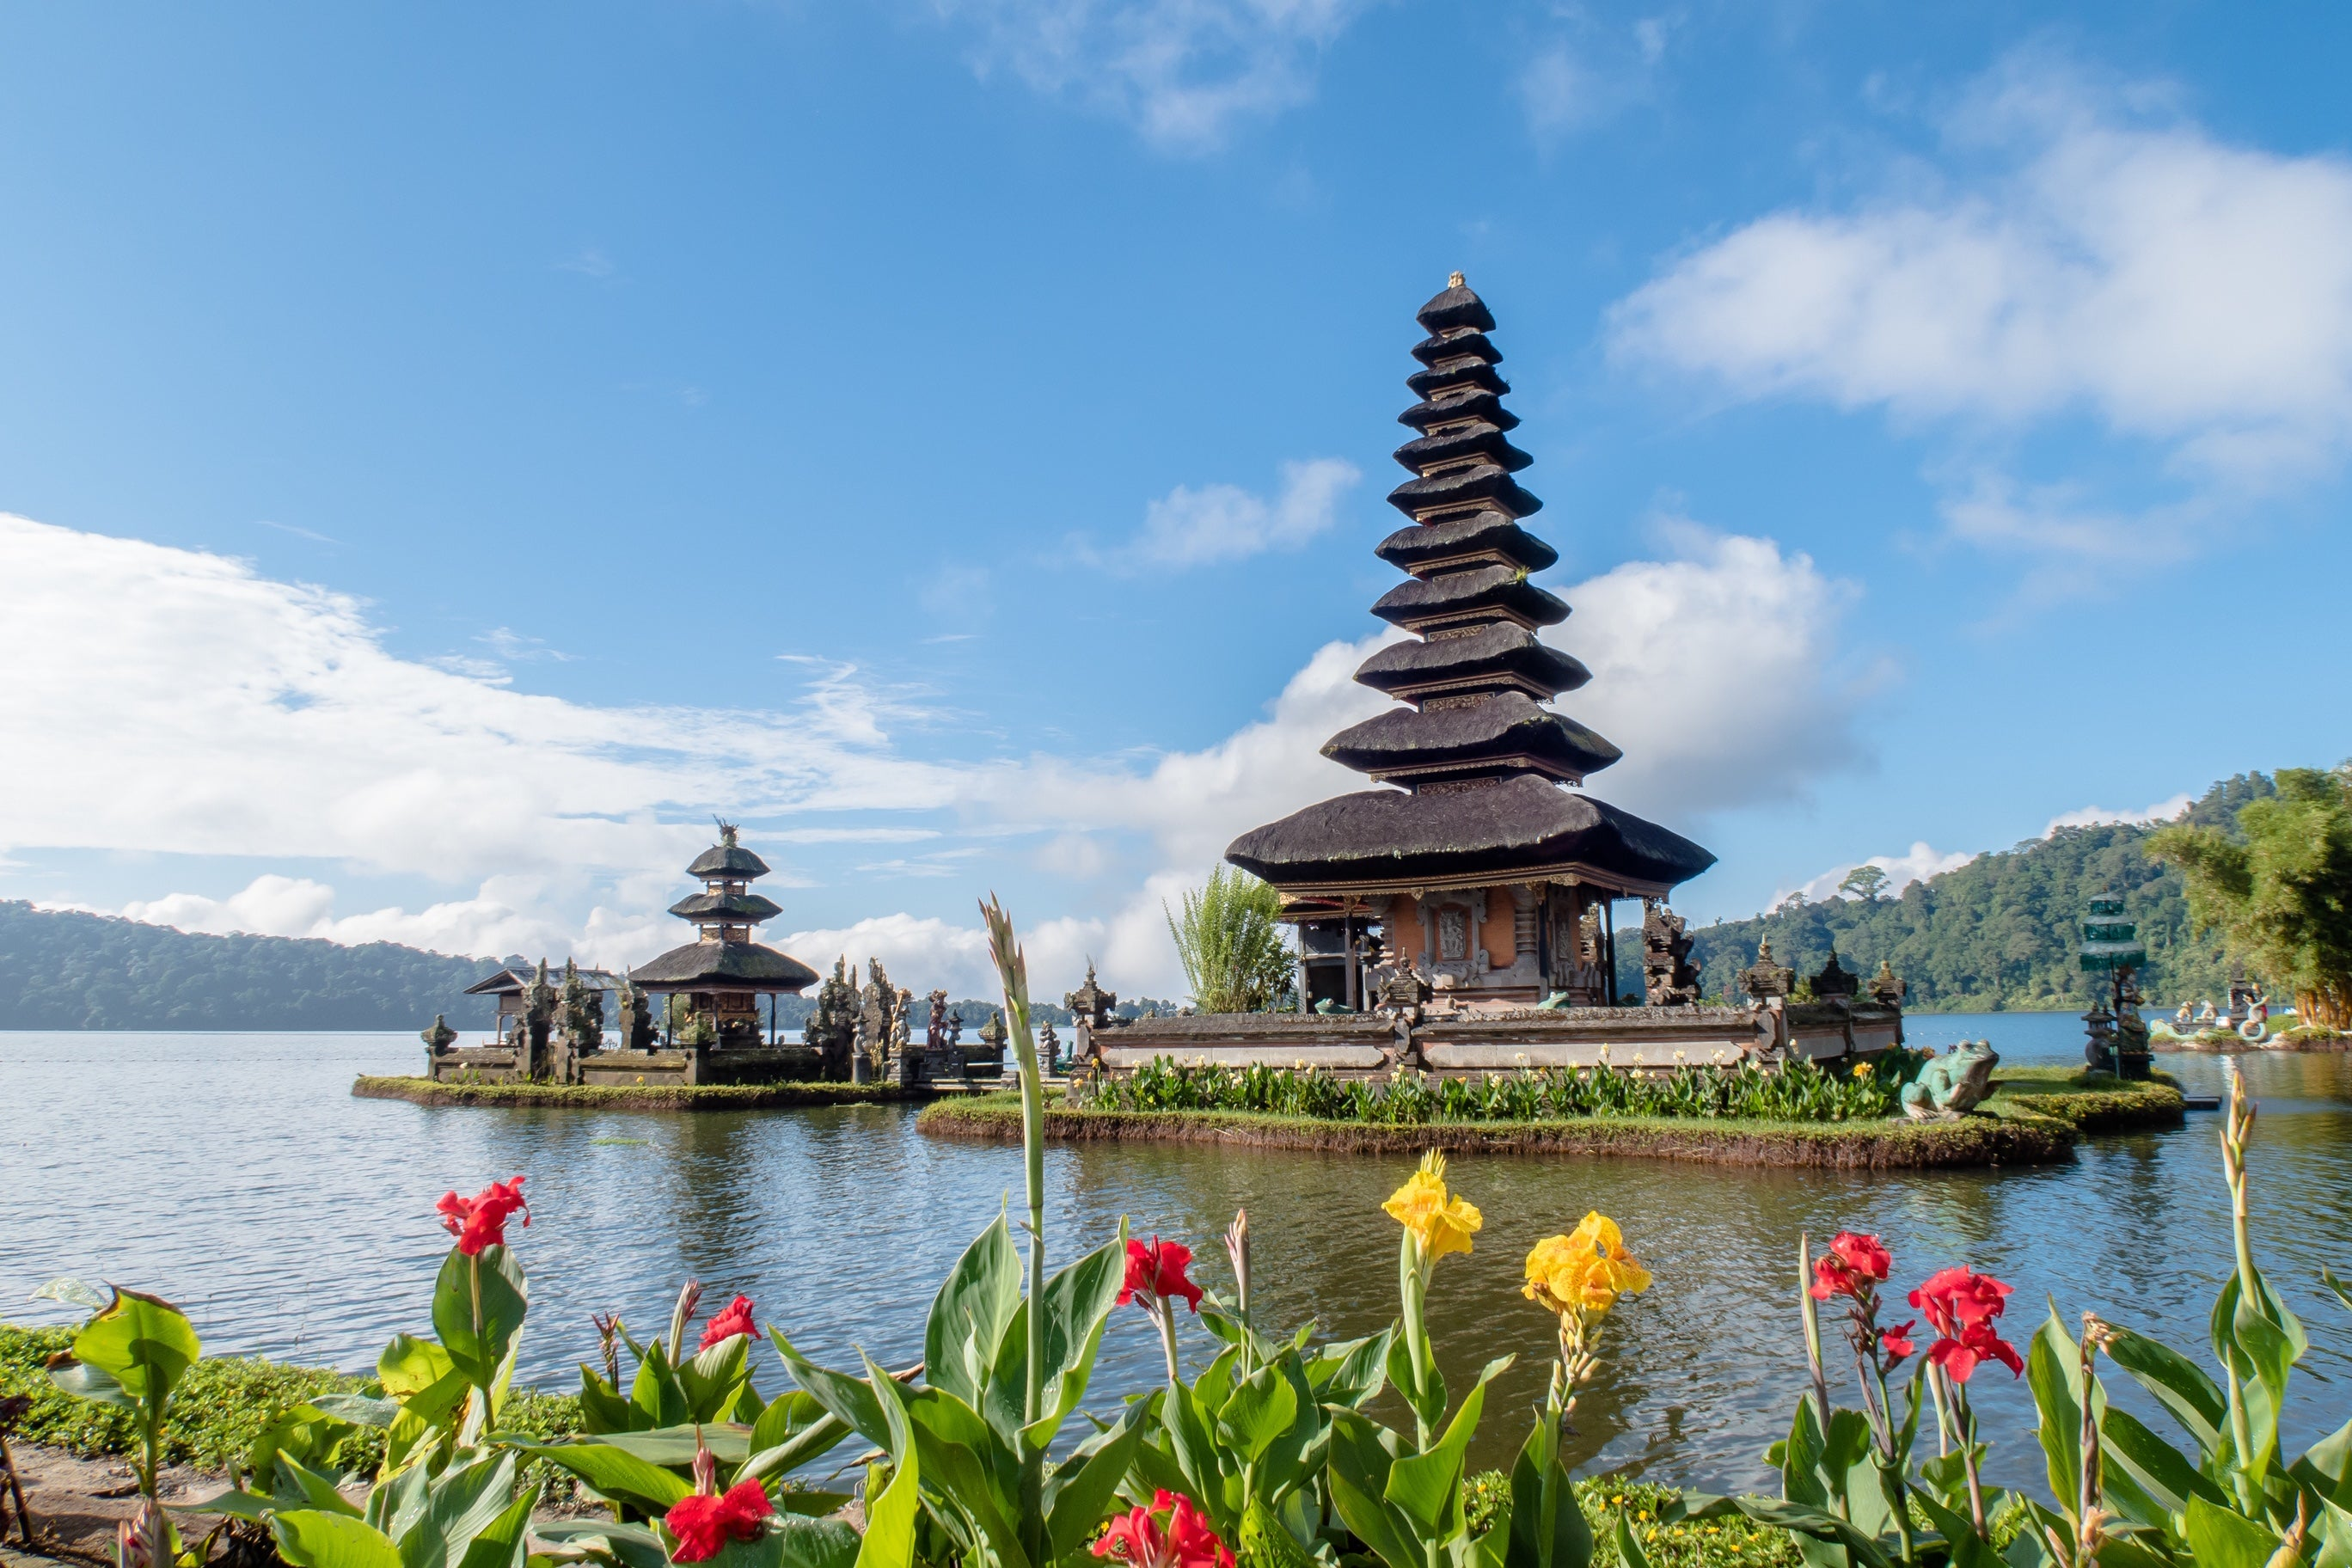 Balinese Wellness Retreat - Yoga and Arts - 6 days, 5 nights, January 25-30 (CHINESE NEW YEAR BREAK!)